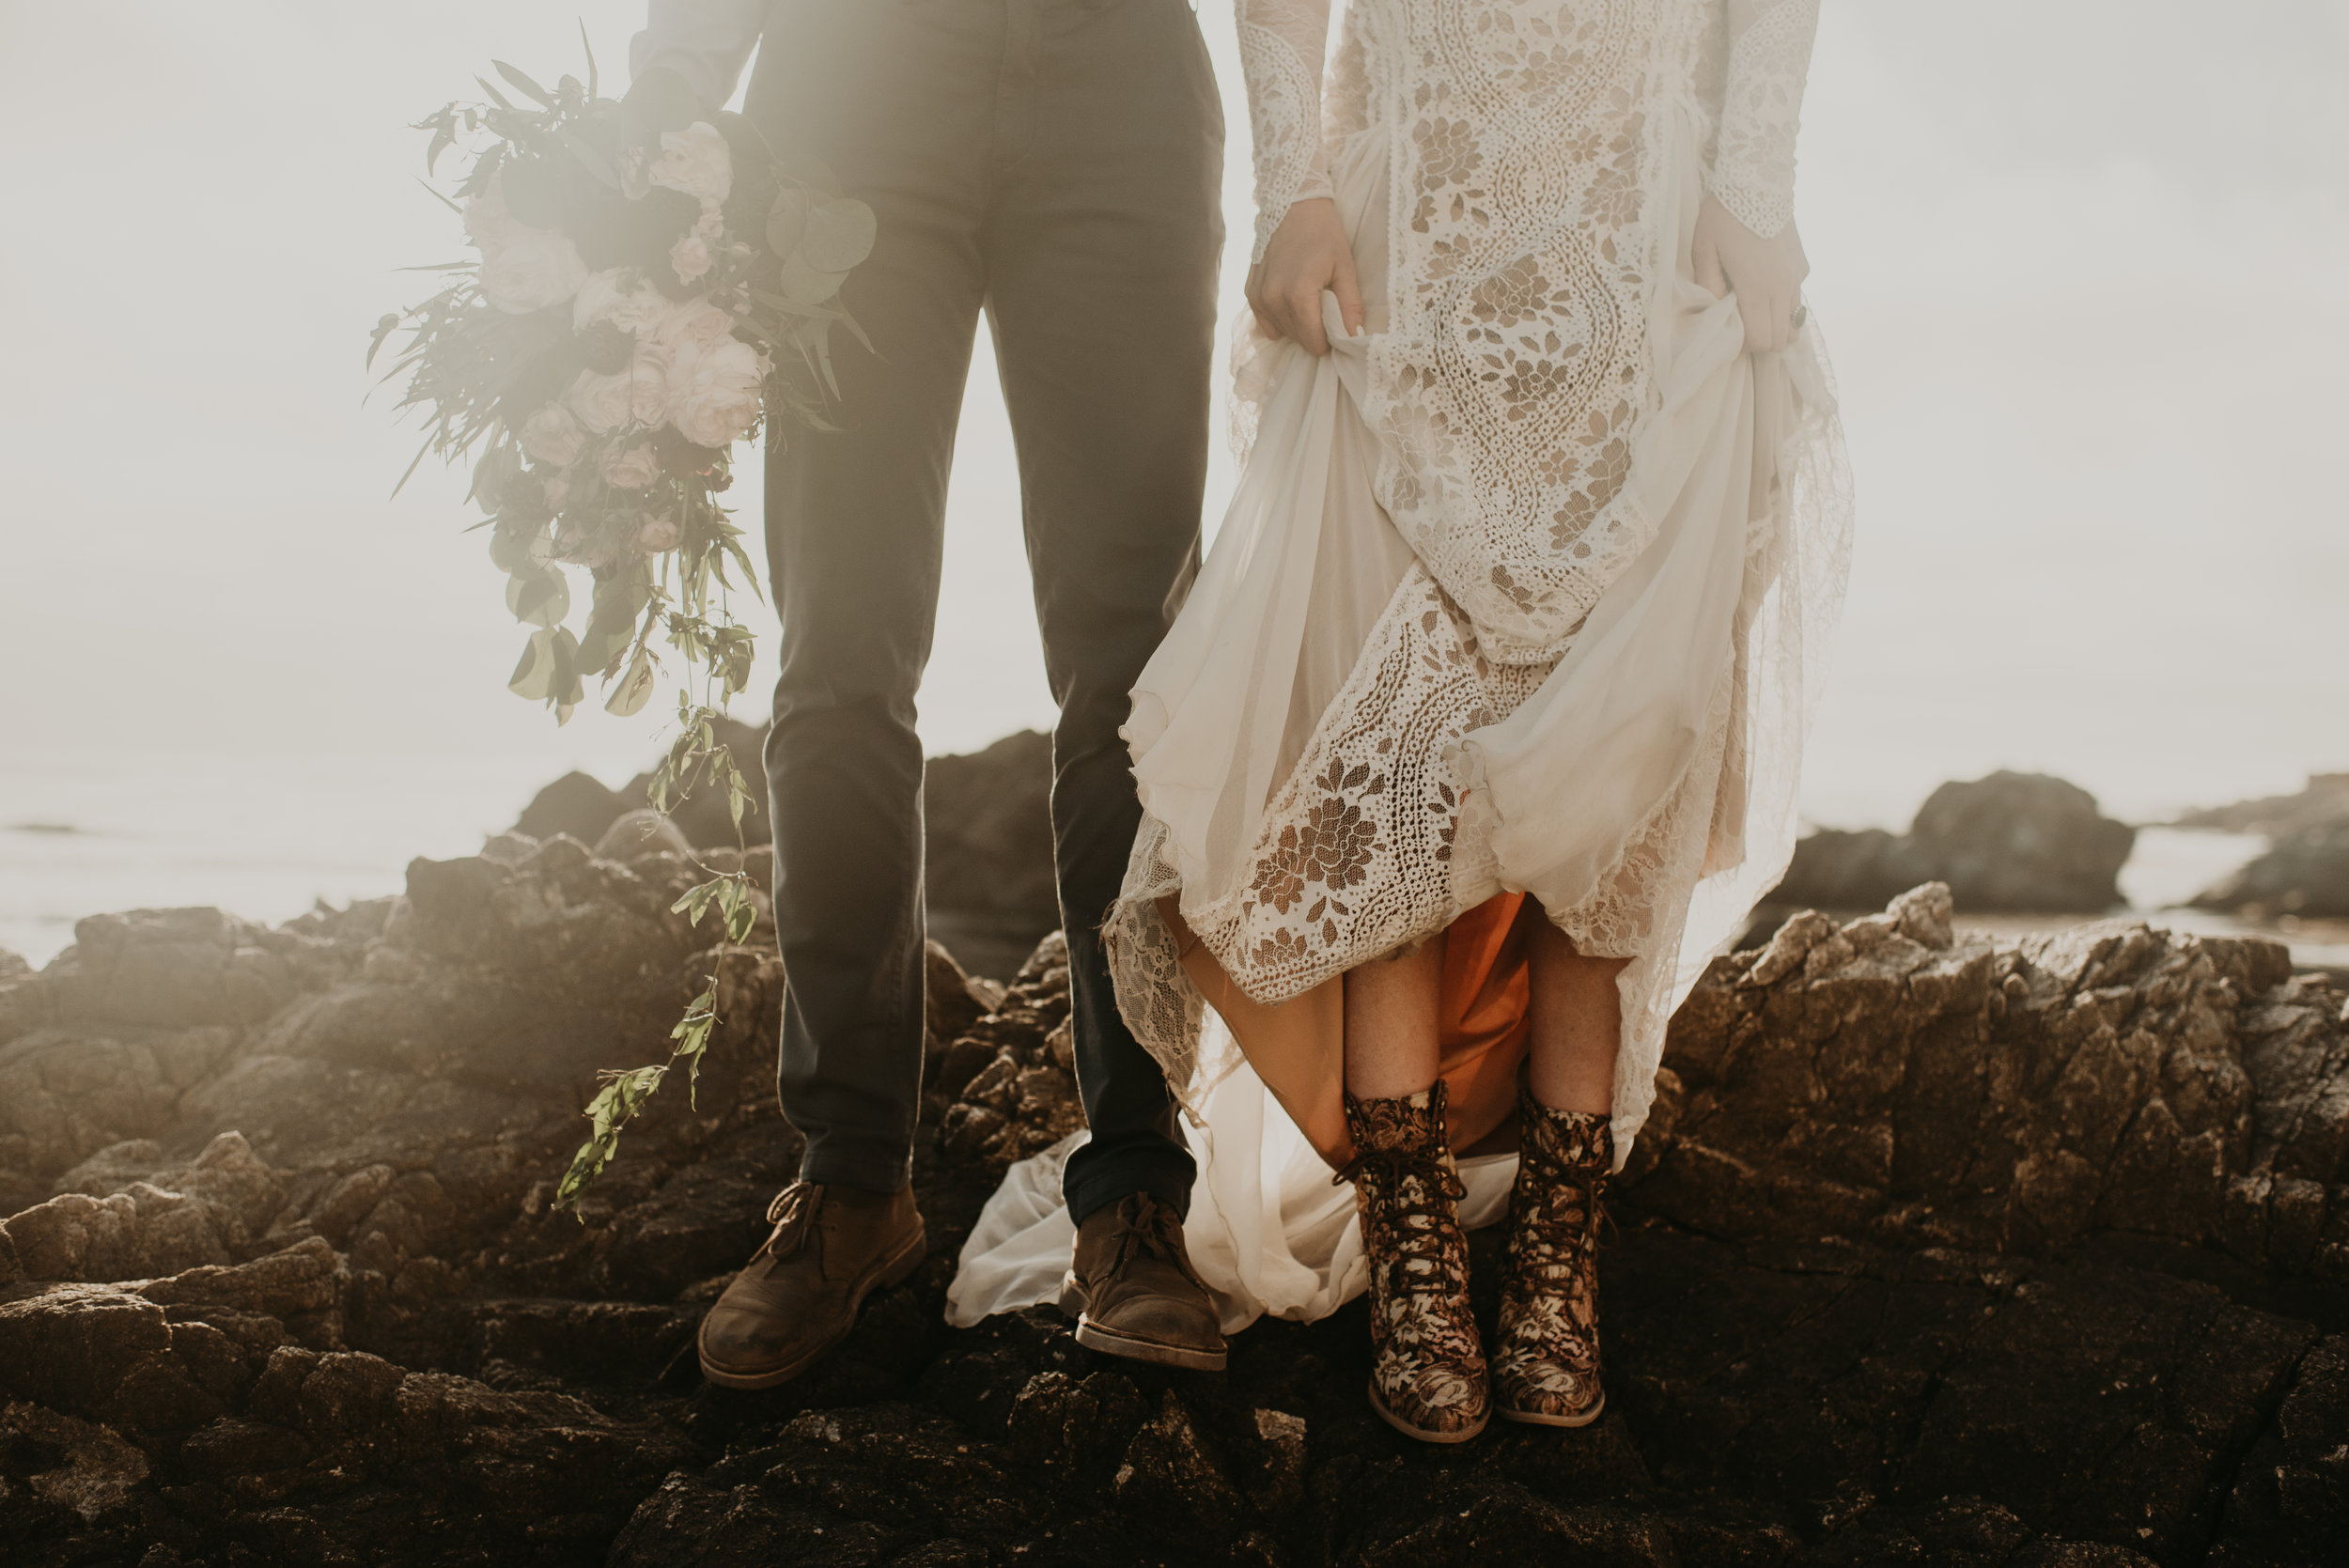 California Wedding and Elopement Photography - Big Sur Adventure Elopement and Monterey Intimate Wedding Reception by Seattle Elopement Photographer Kamra Fuller Photography